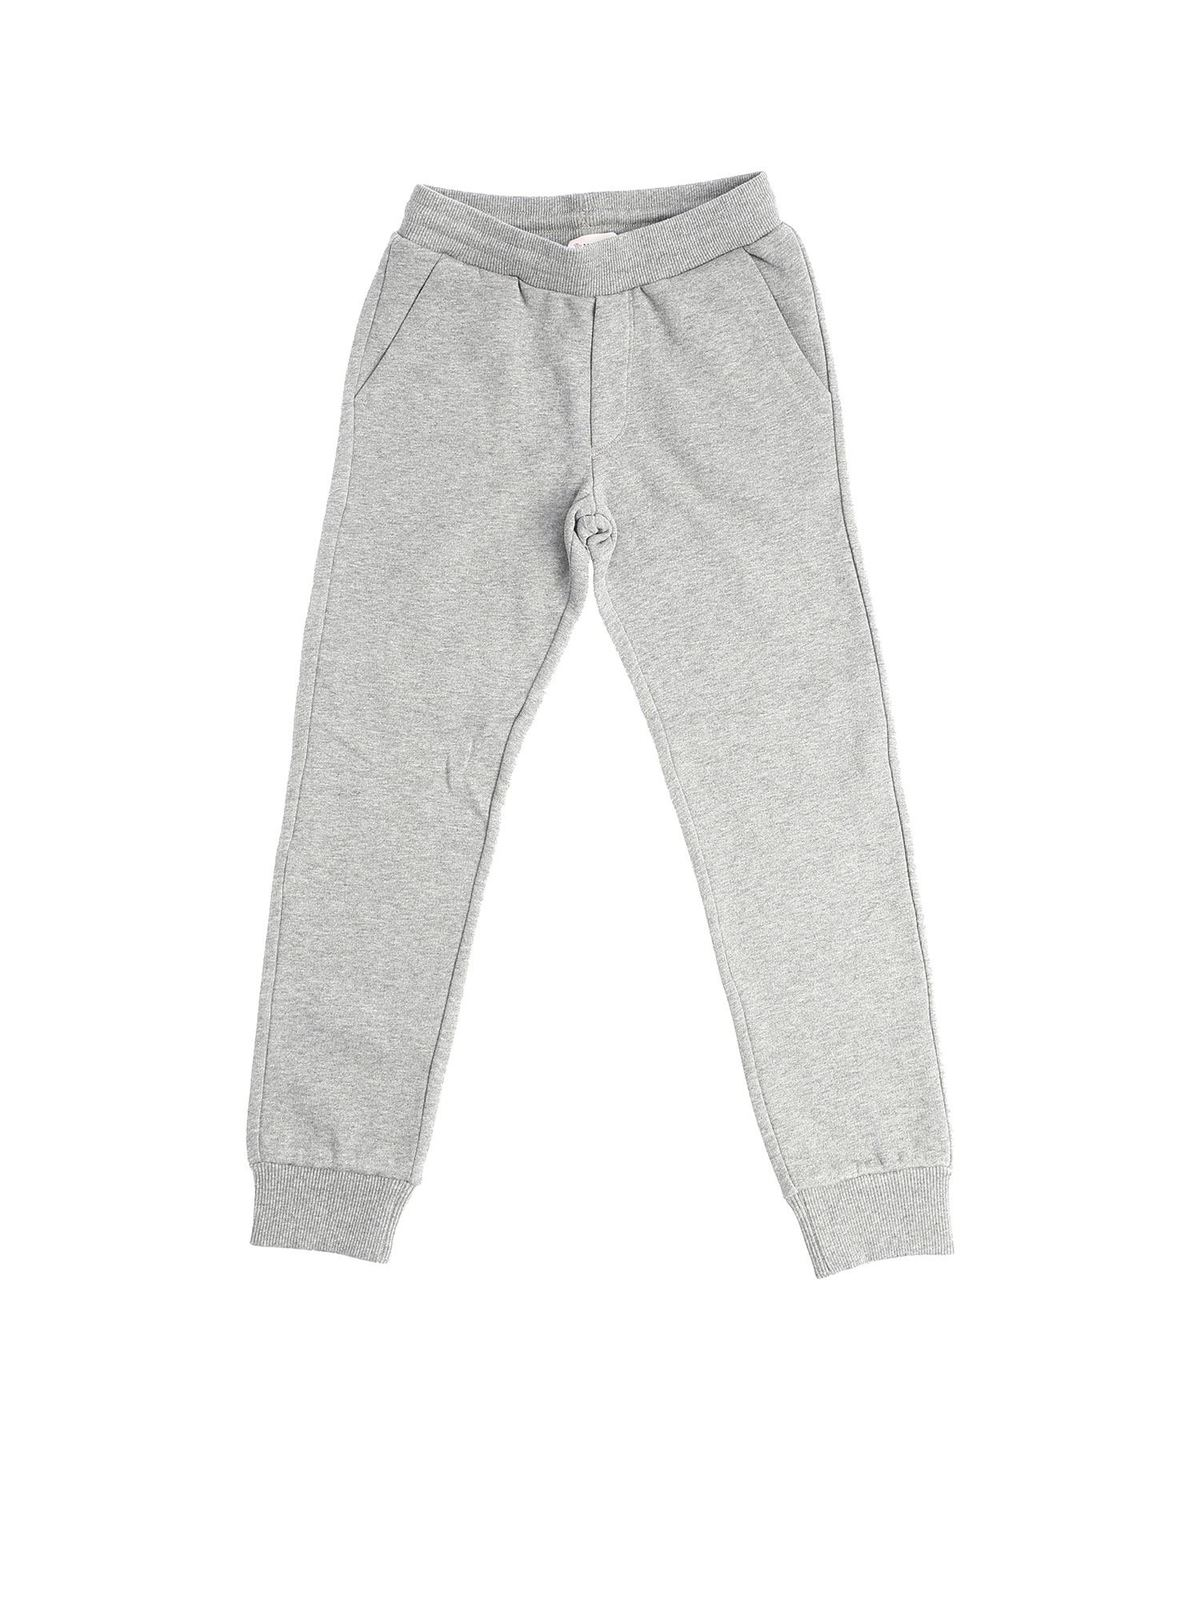 MONCLER JR GREY SWEAT PANTS